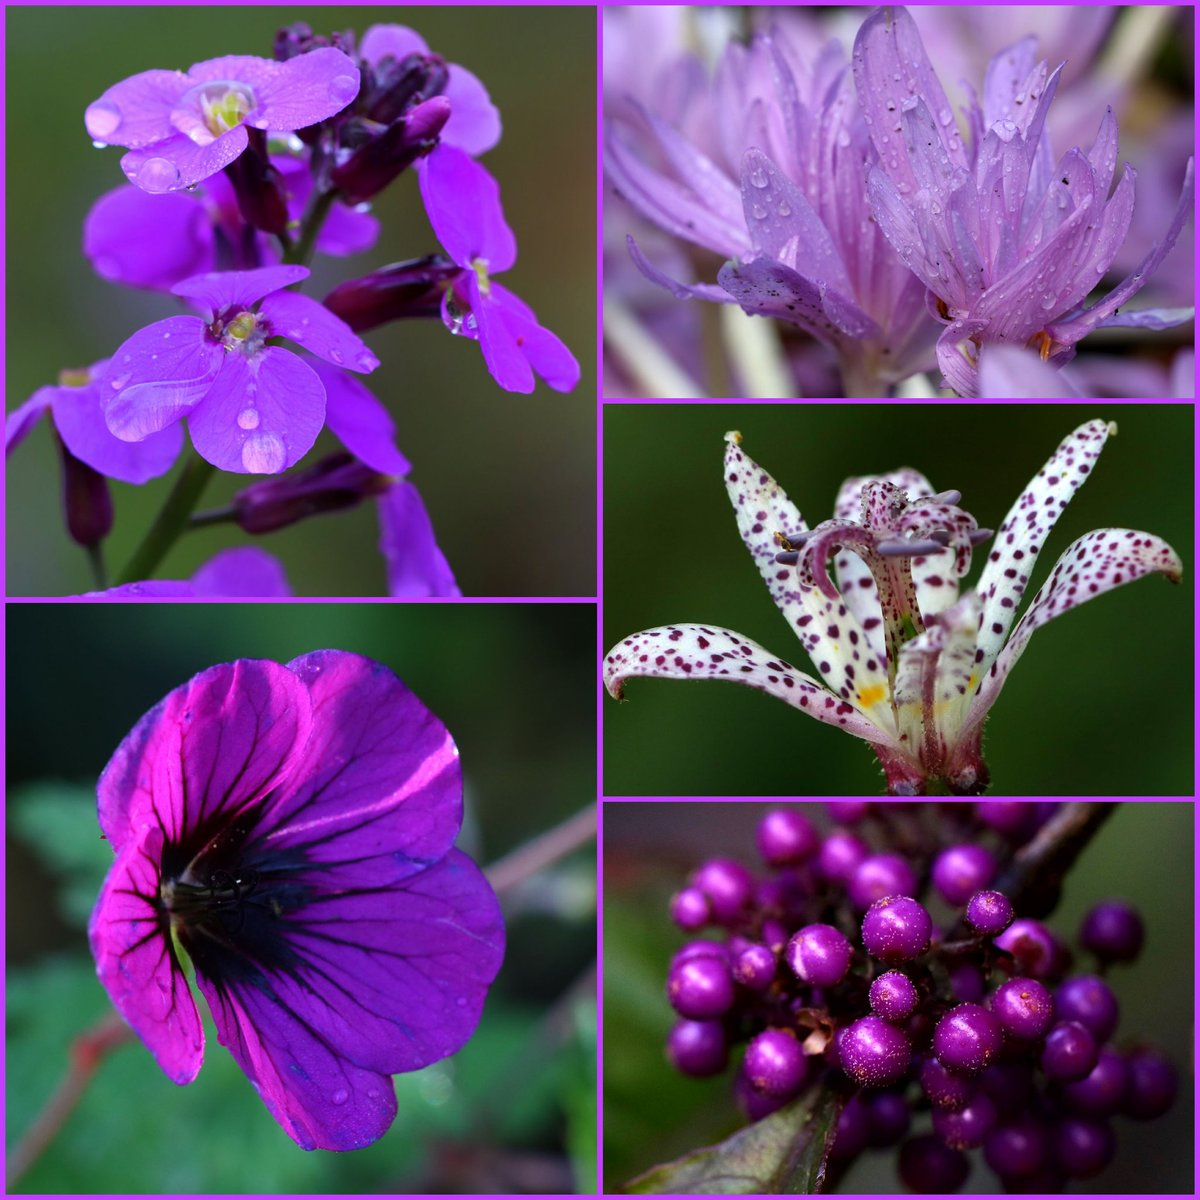 A little #autumnal #purpleiciousness for a very rainy #October day #purpleflowers #collage  <br>http://pic.twitter.com/isVbNa1mKC